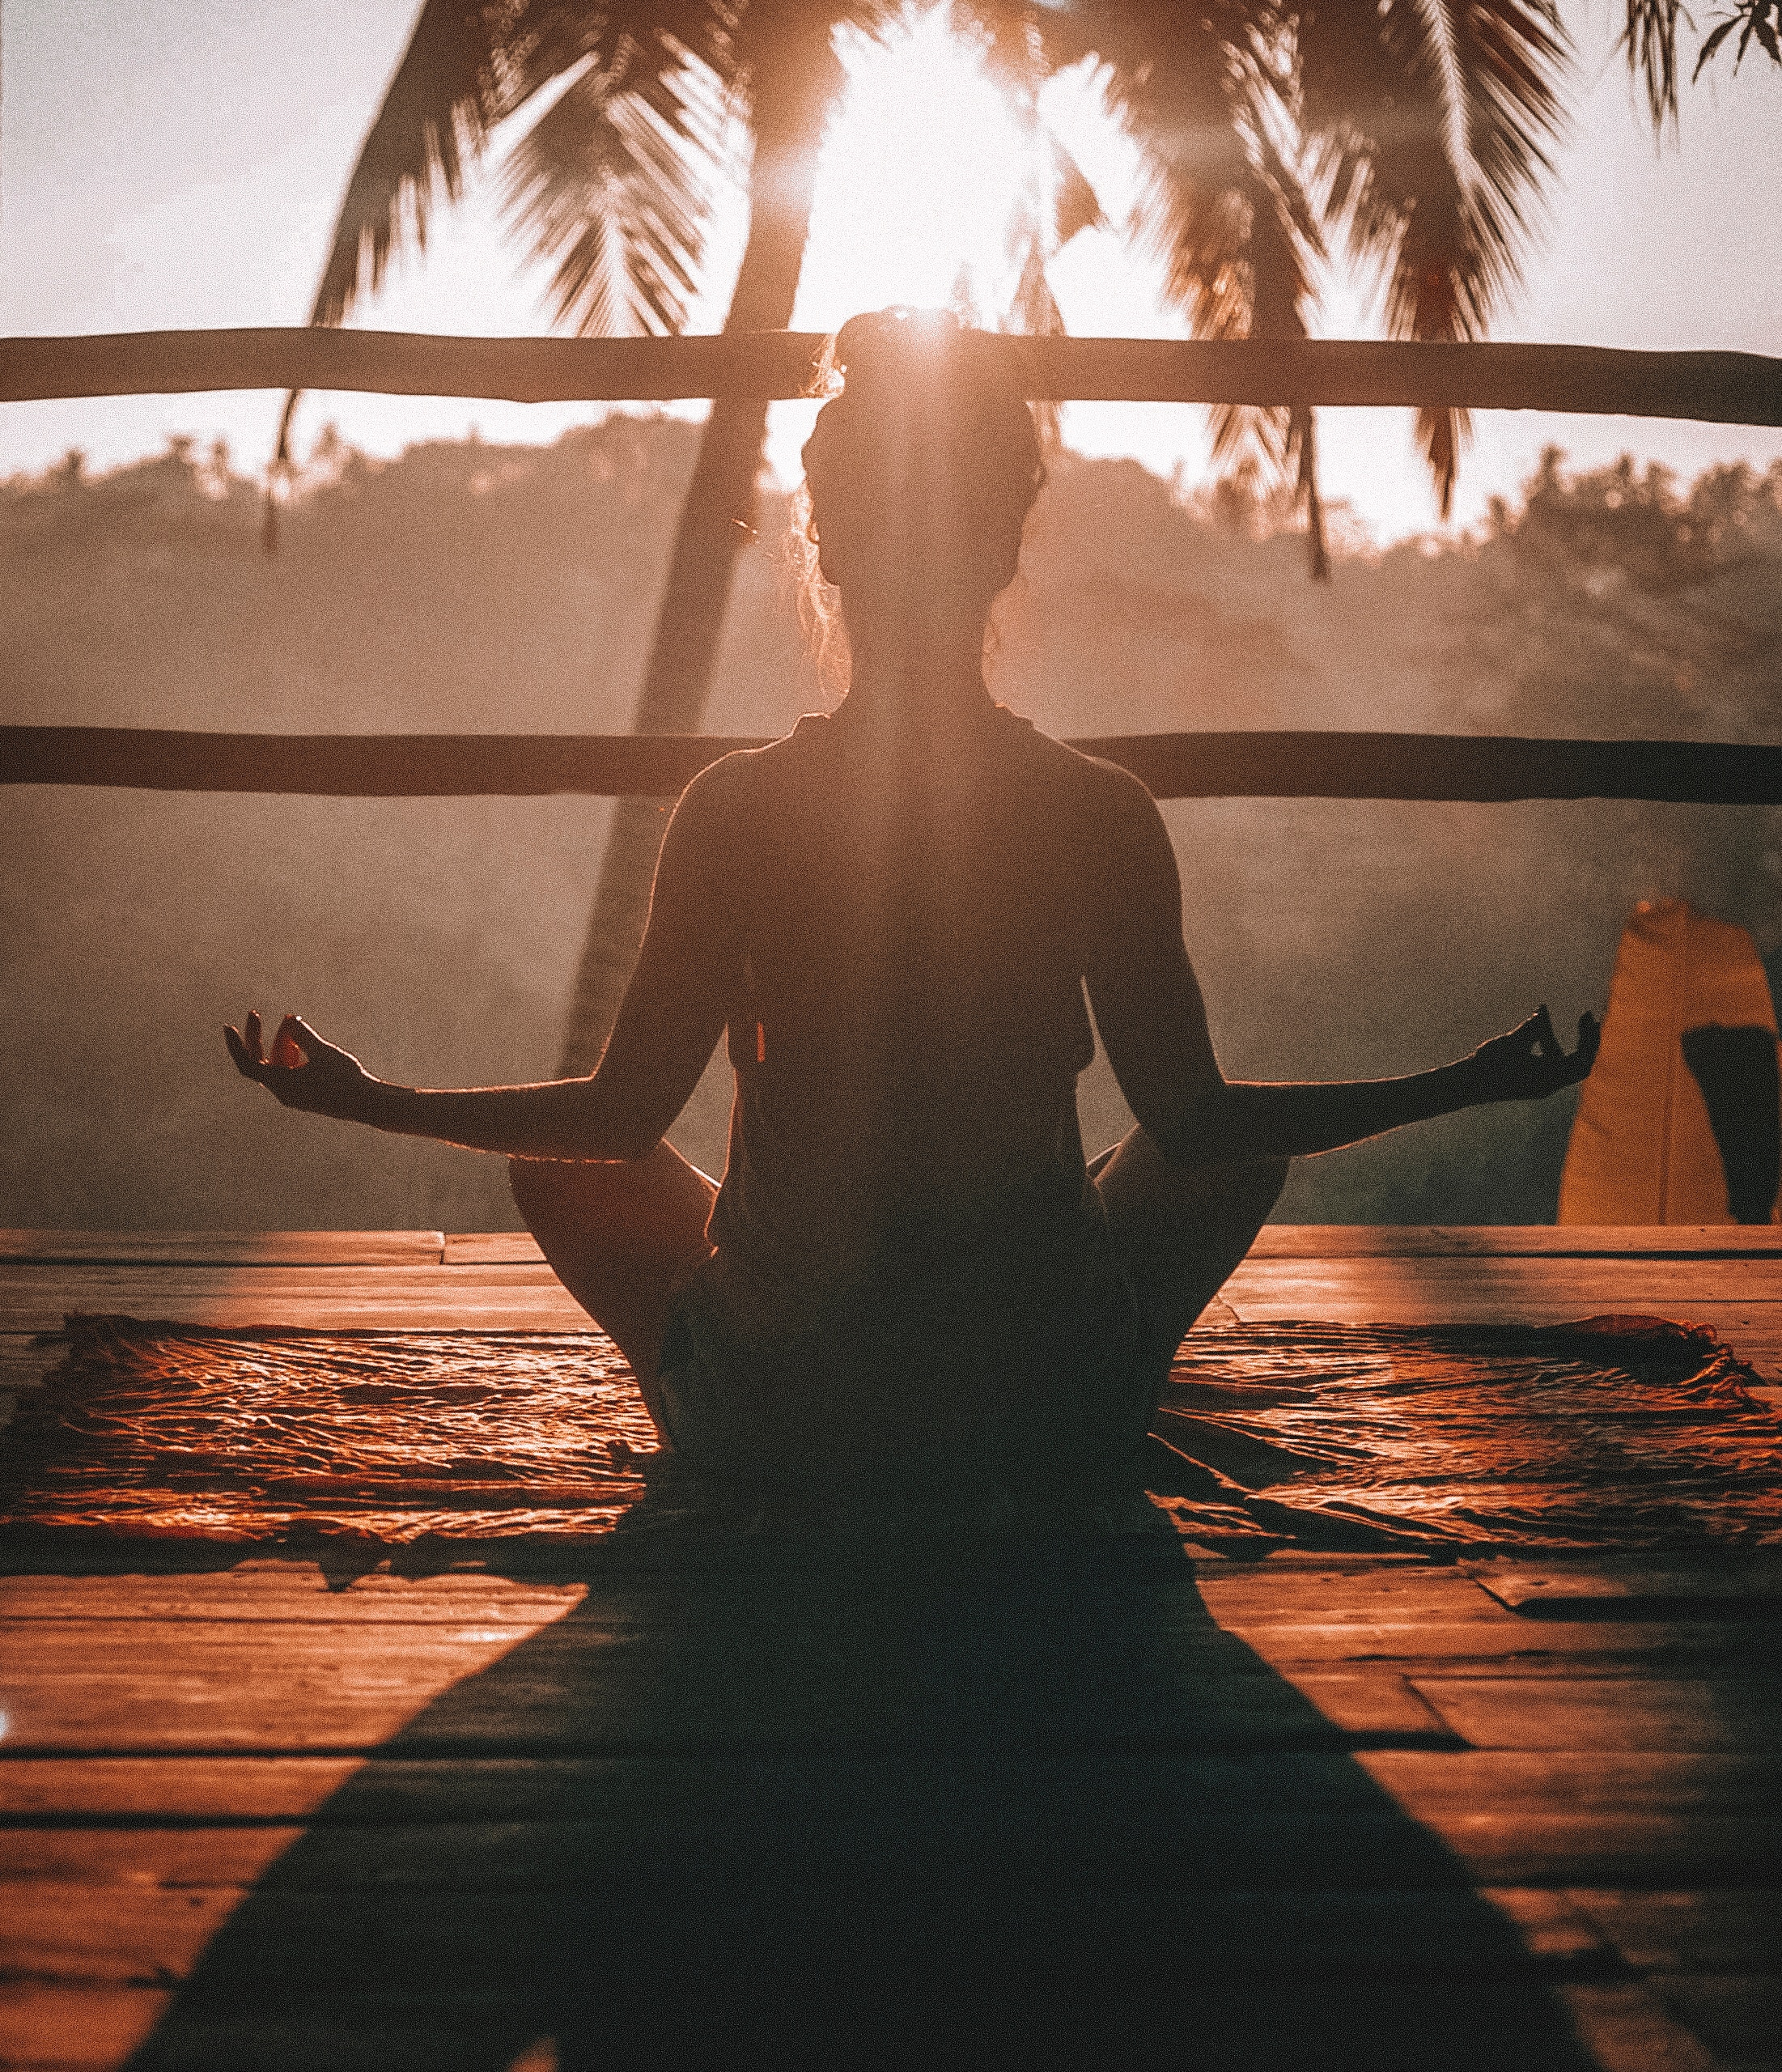 Yoga - Stretch, breath, loosen up with Yoga sessions